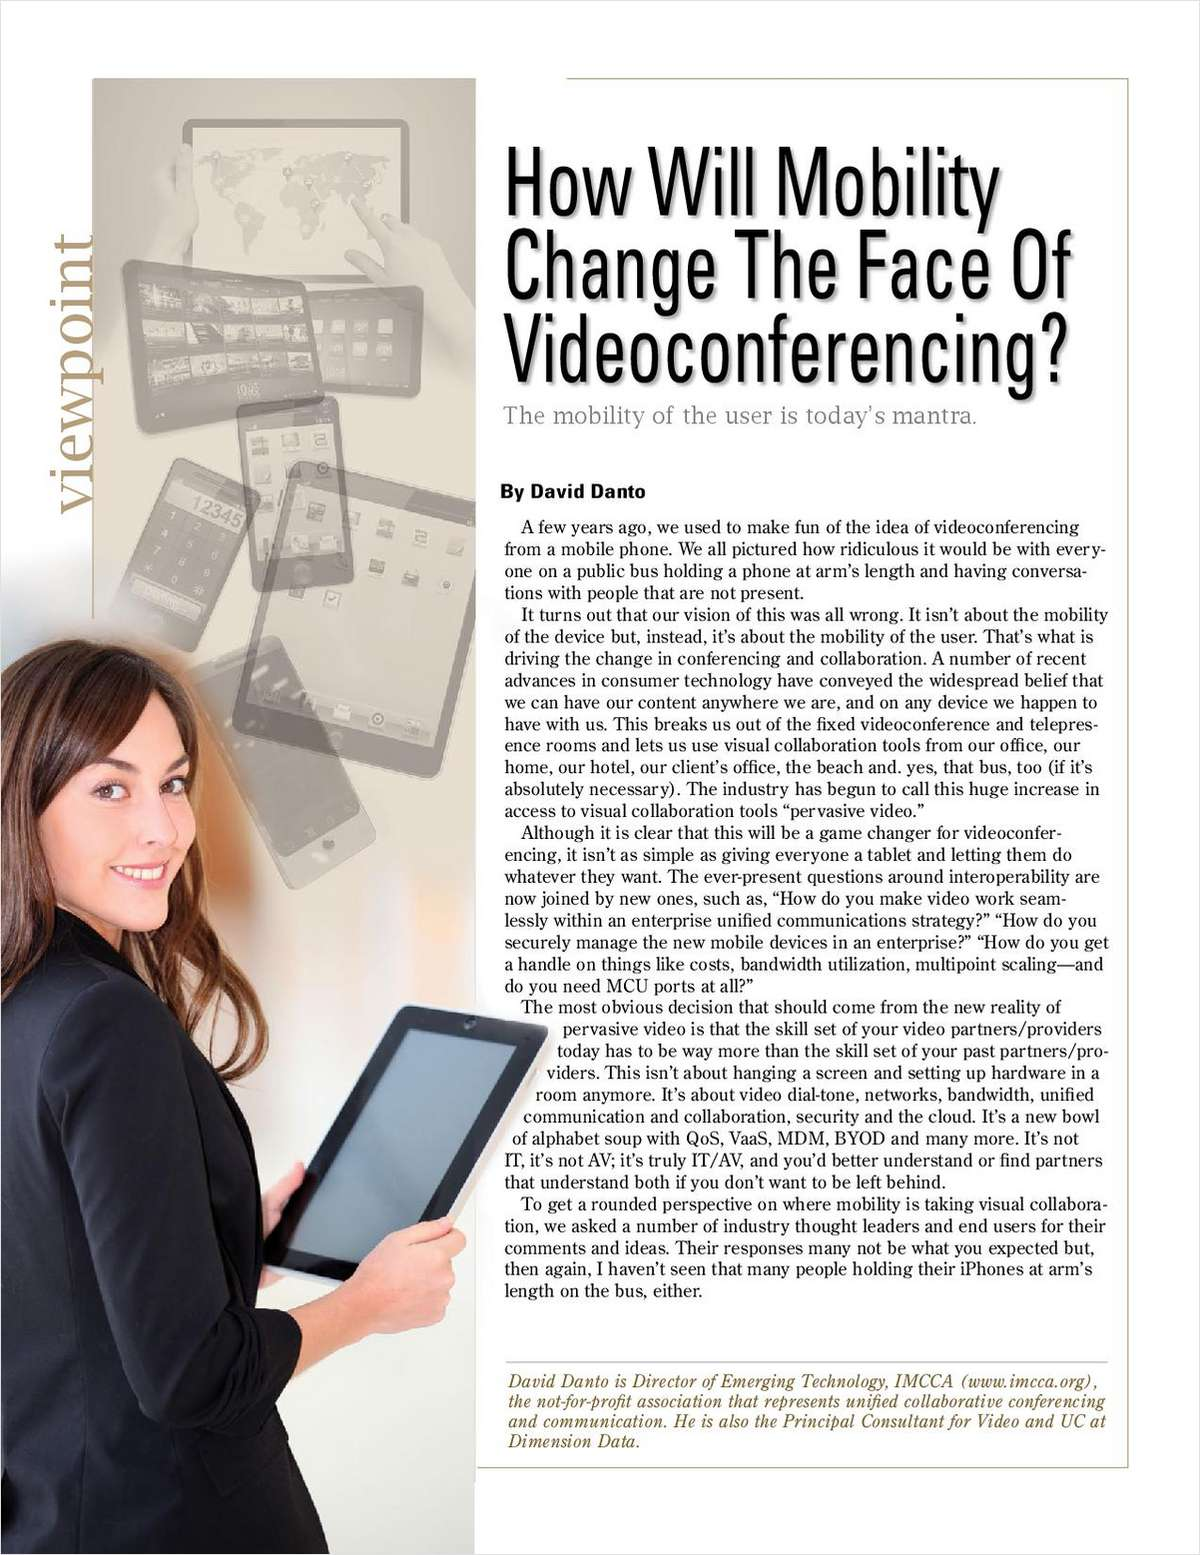 How Will Mobility Change The Face Of Videoconferencing?